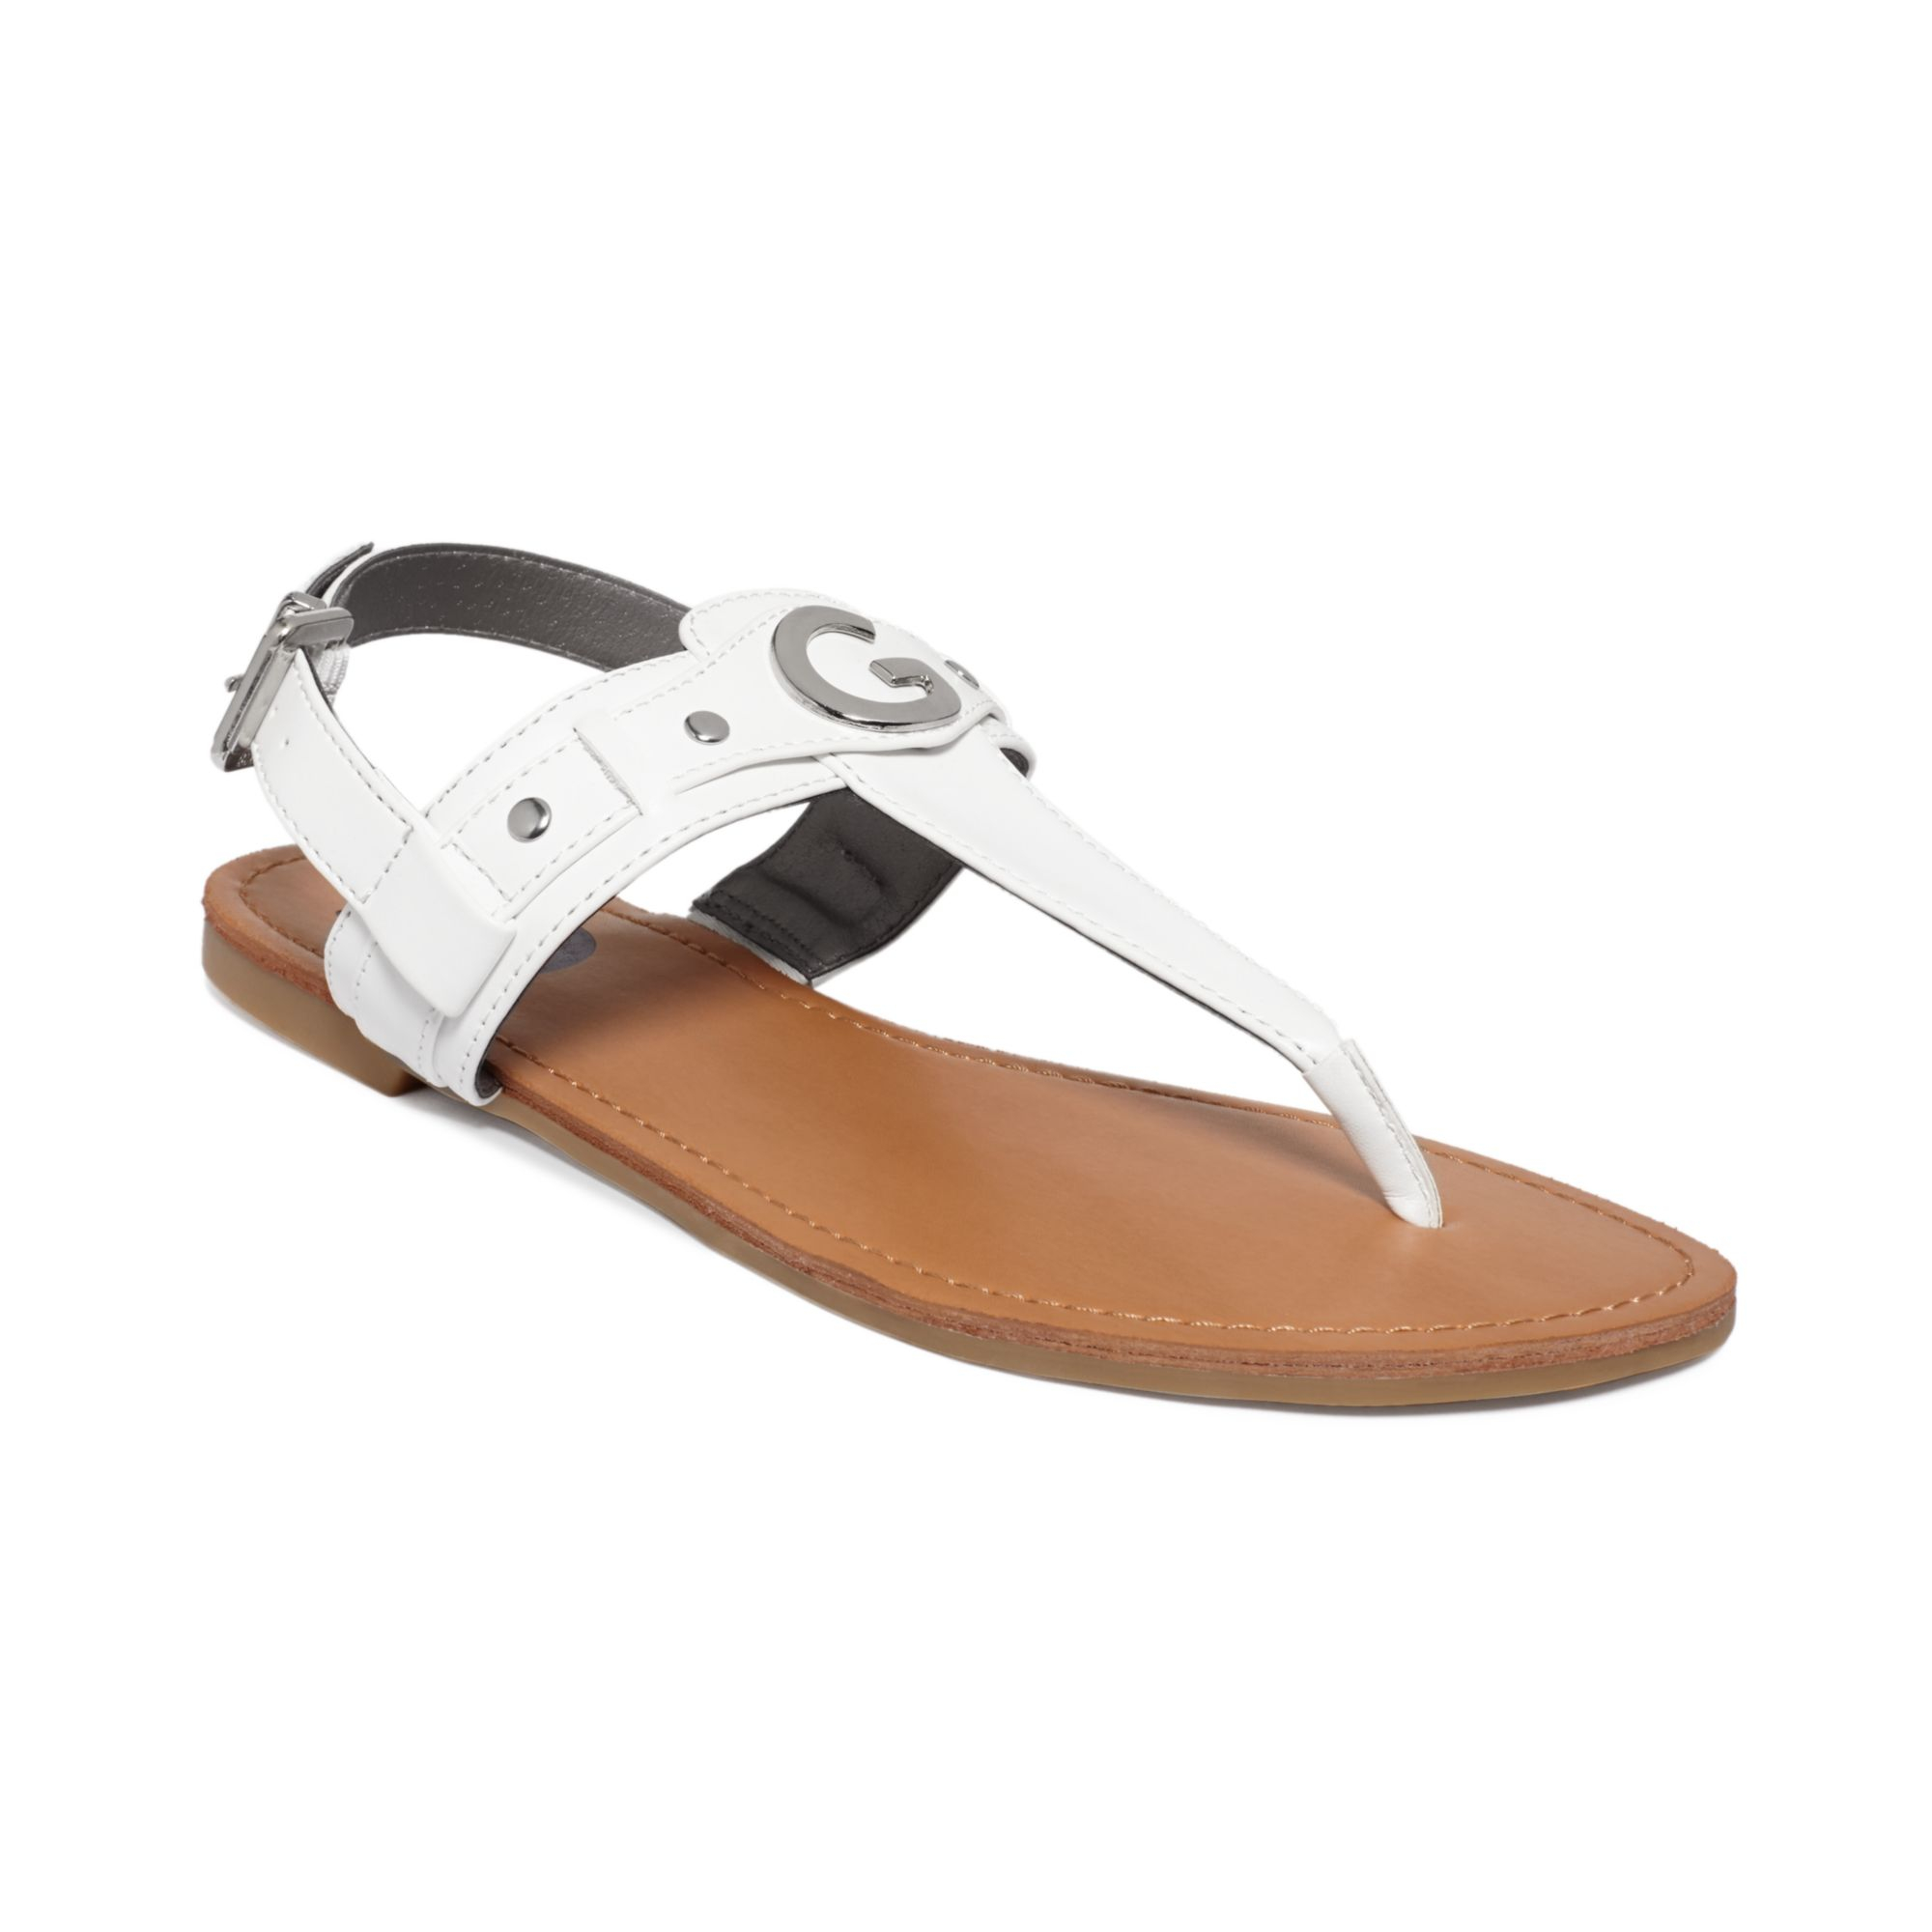 ab4782cc86e82d Lyst - G by Guess Womens Lundon Flat Thong Sandals in White